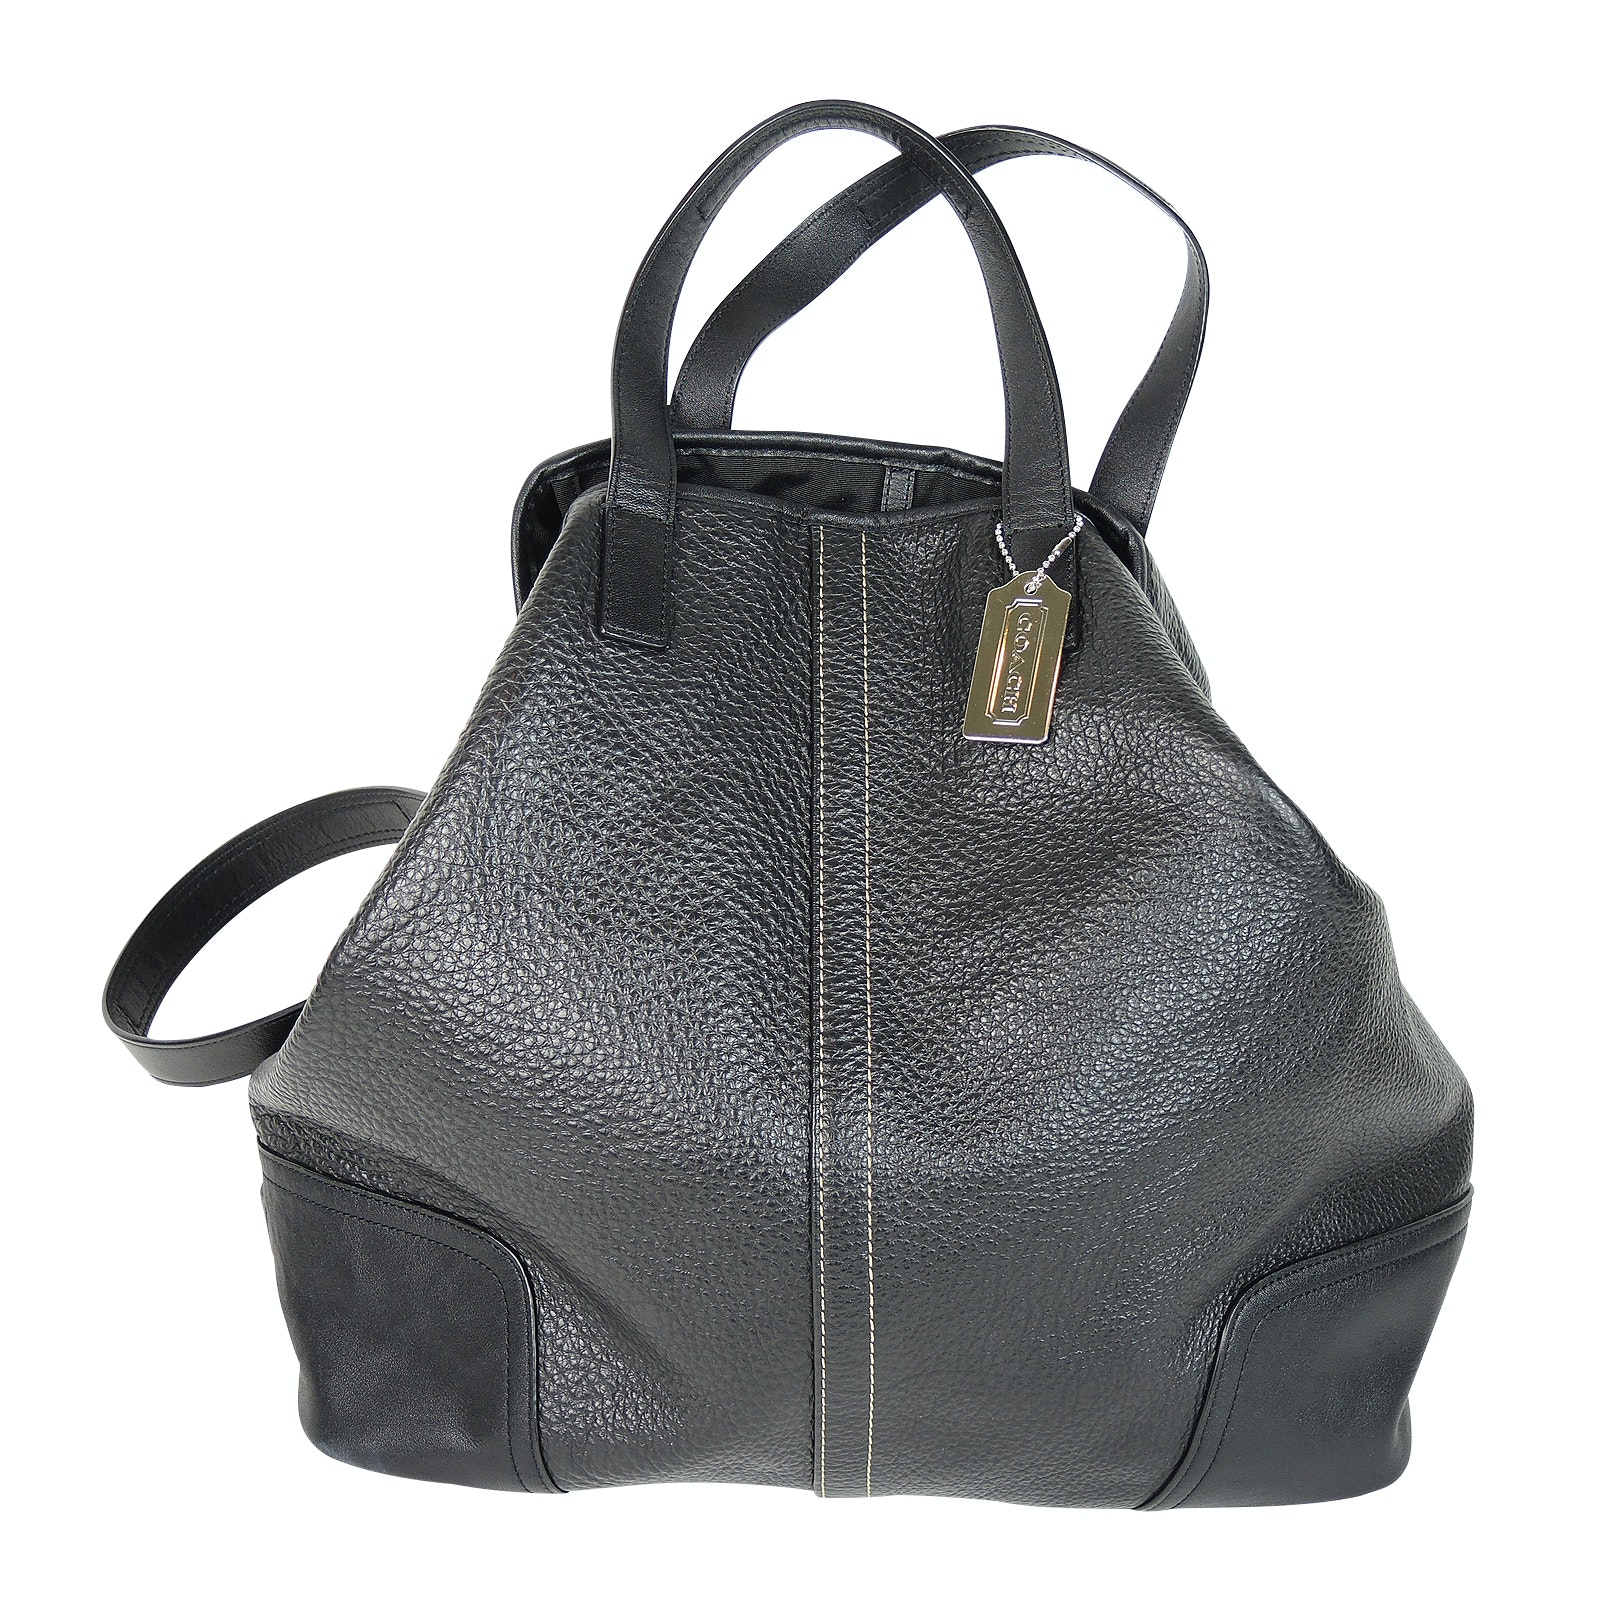 Coach New York Hadley Luxe Black Leather Shoulder Bag